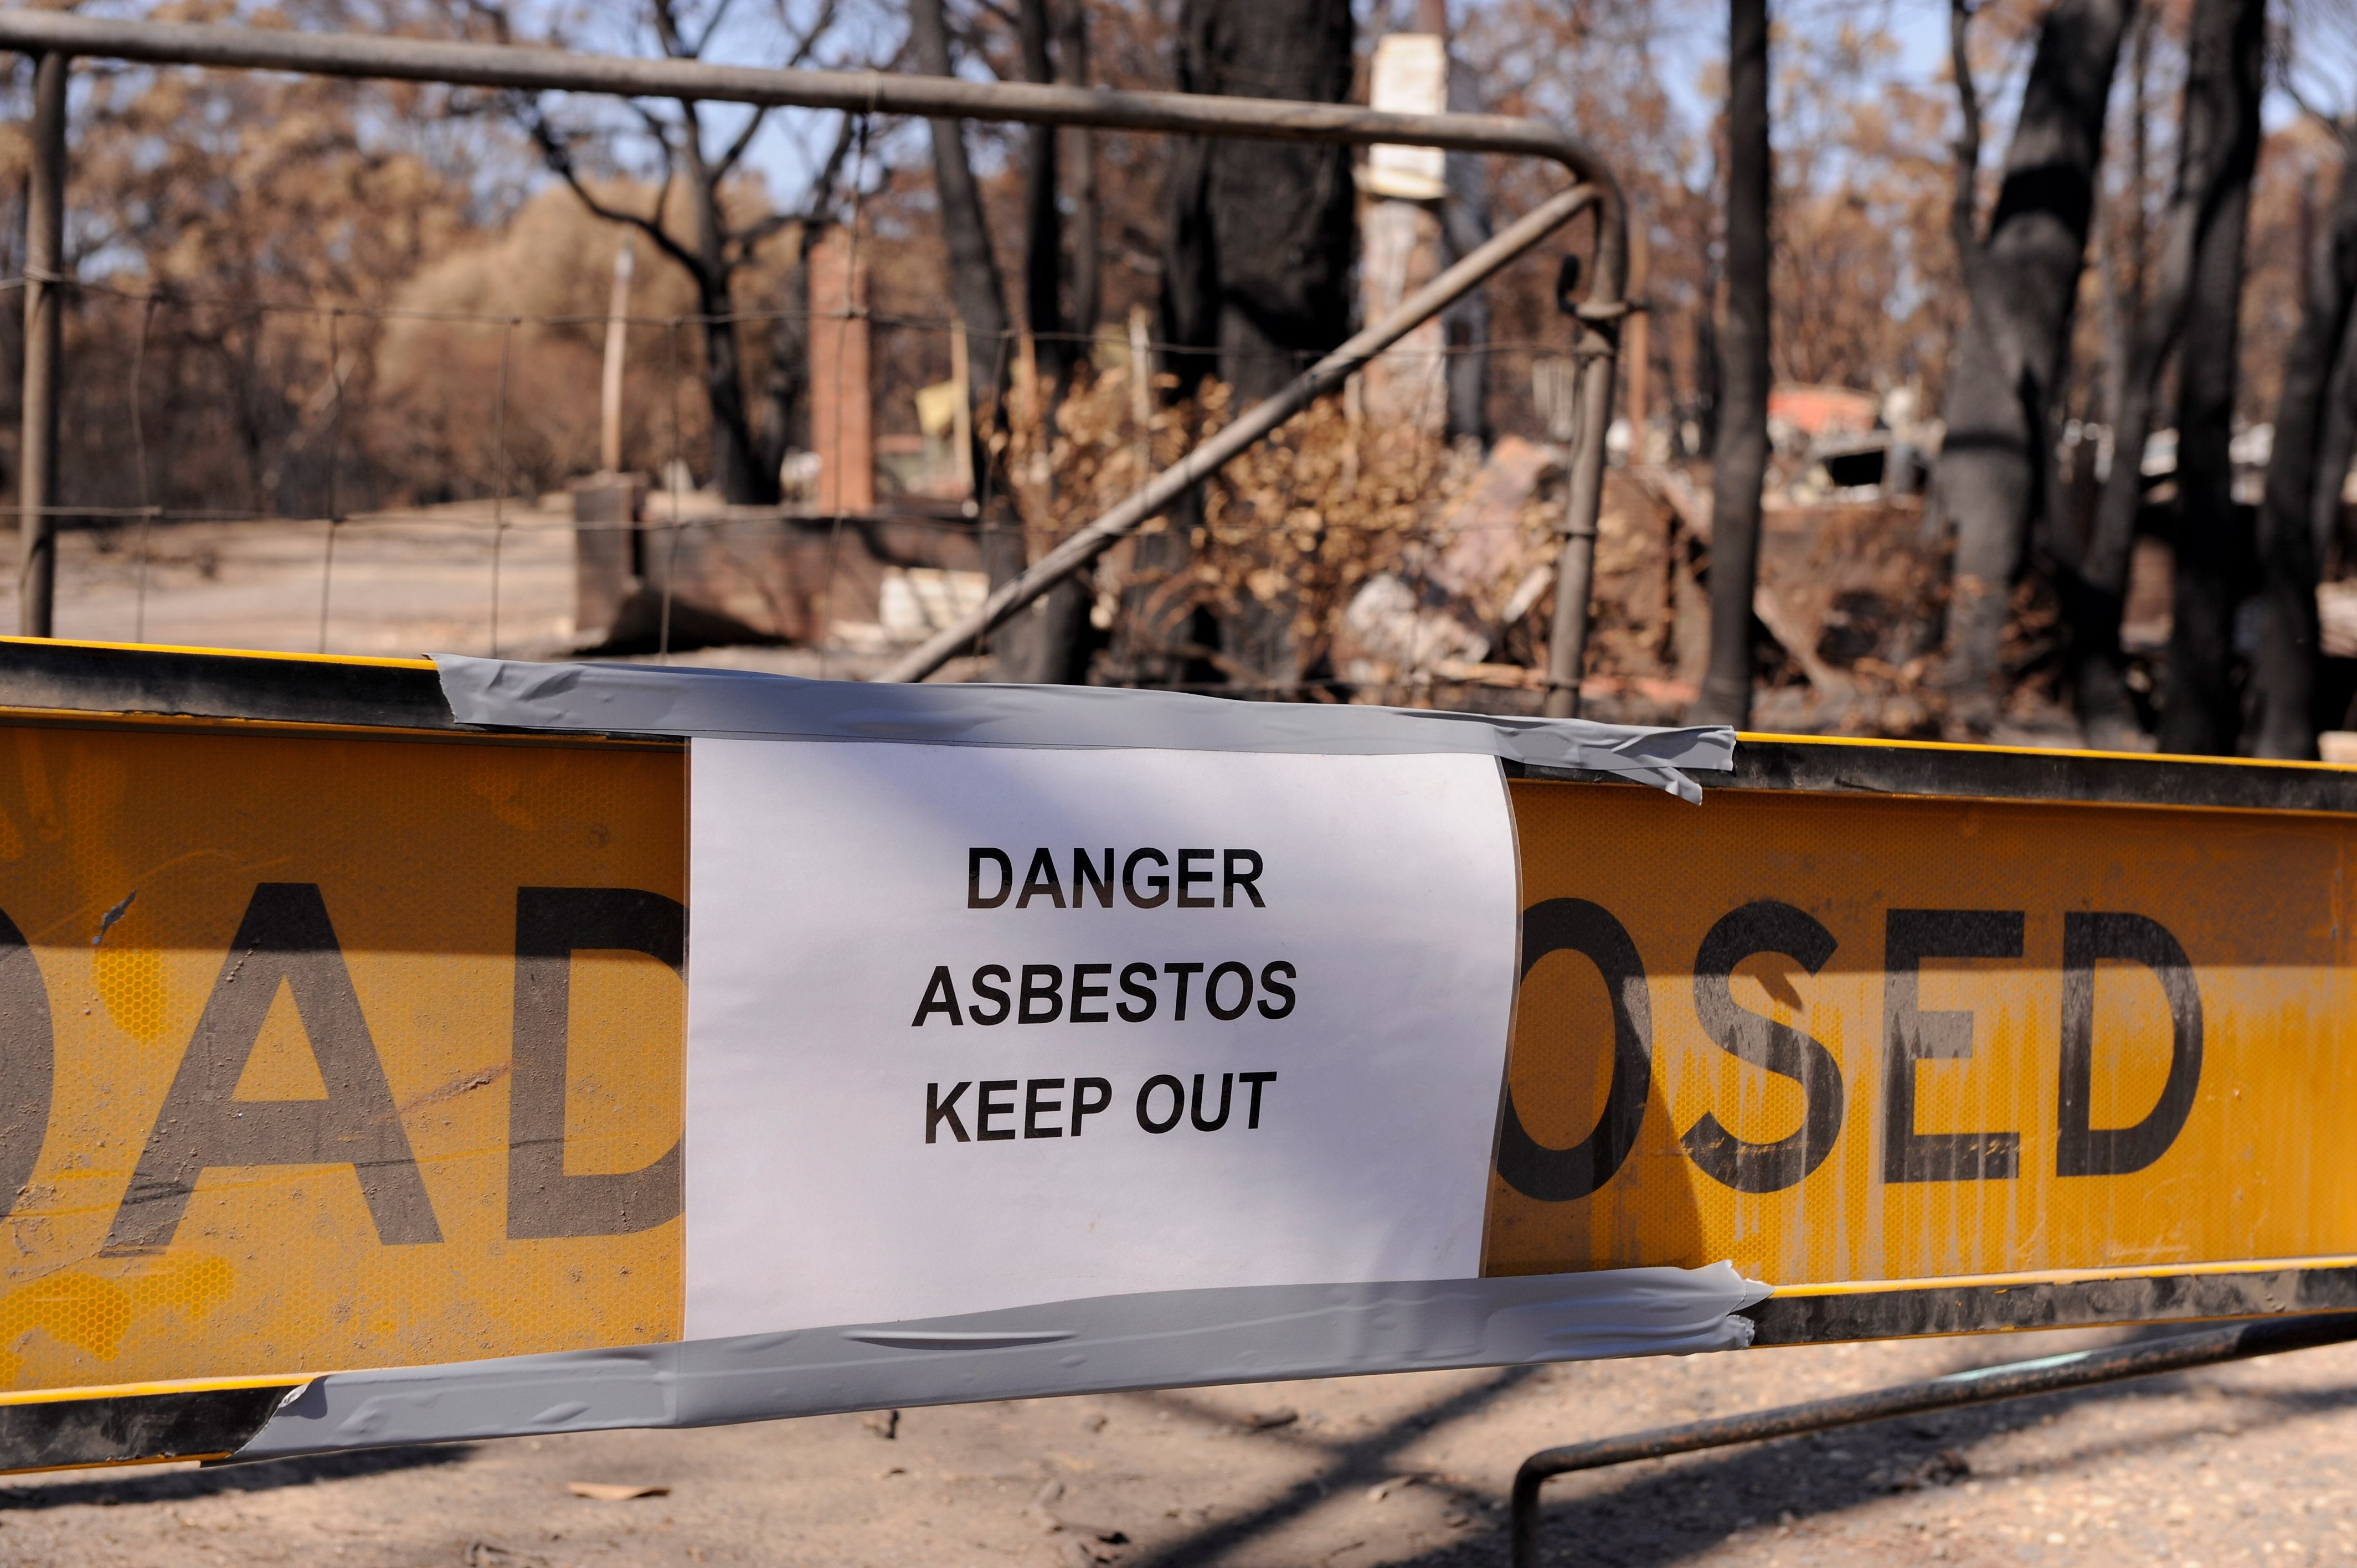 Asbestos, keep out, asbestos deaths